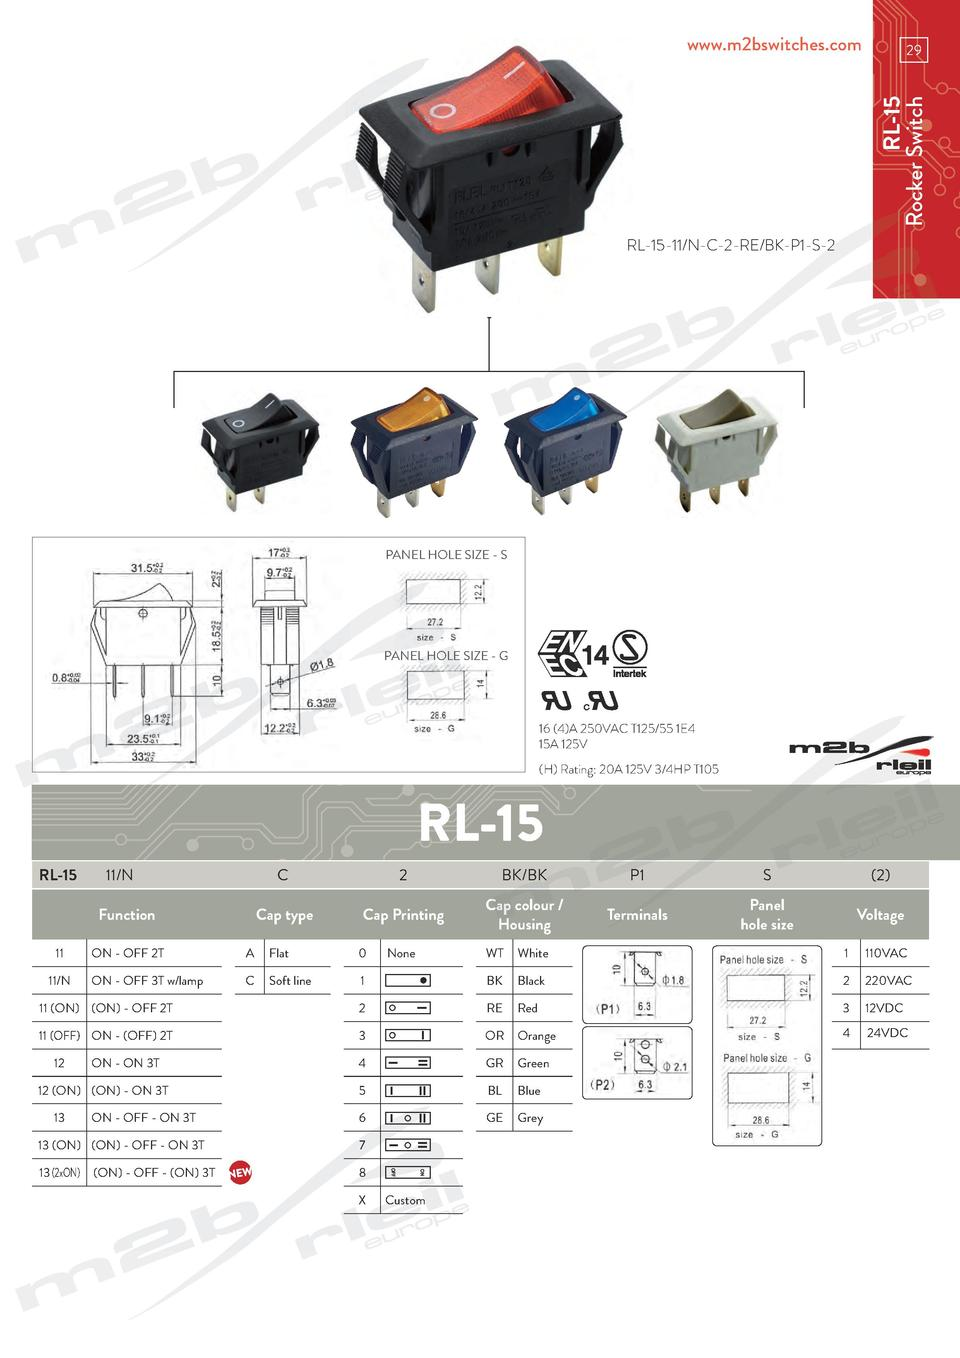 www.m2bswitches.com  RL-15 Rocker Switch  29  RL-15-11 N-C-2-RE BK-P1-S-2  PANEL HOLE SIZE - S  PANEL HOLE SIZE - G  16  4...